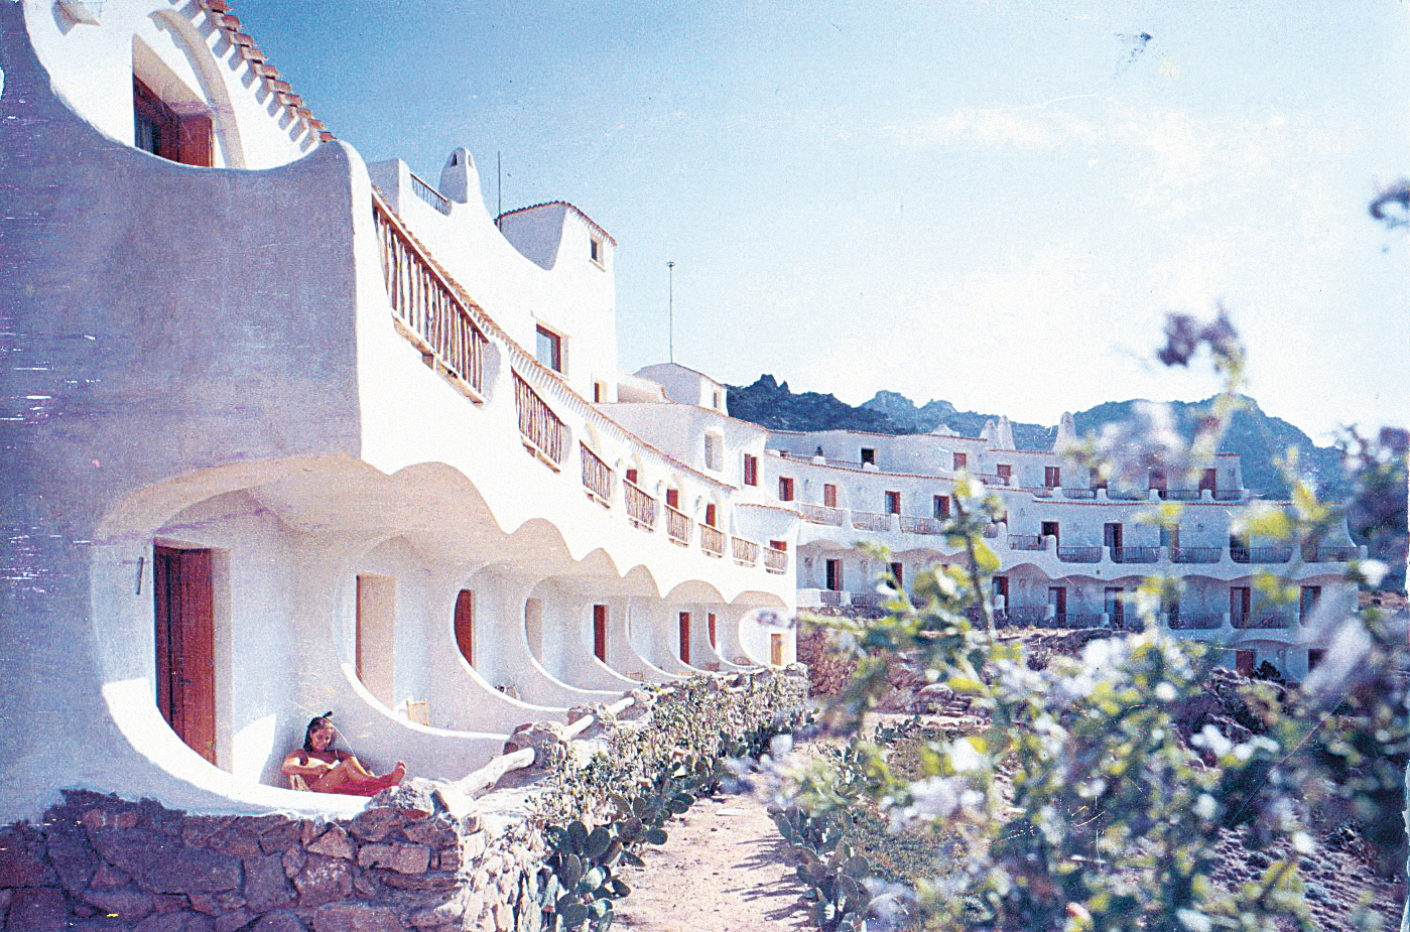 The Hotel Luci de la Muntagna by Michele Busiri Vici (photo c. 1965)